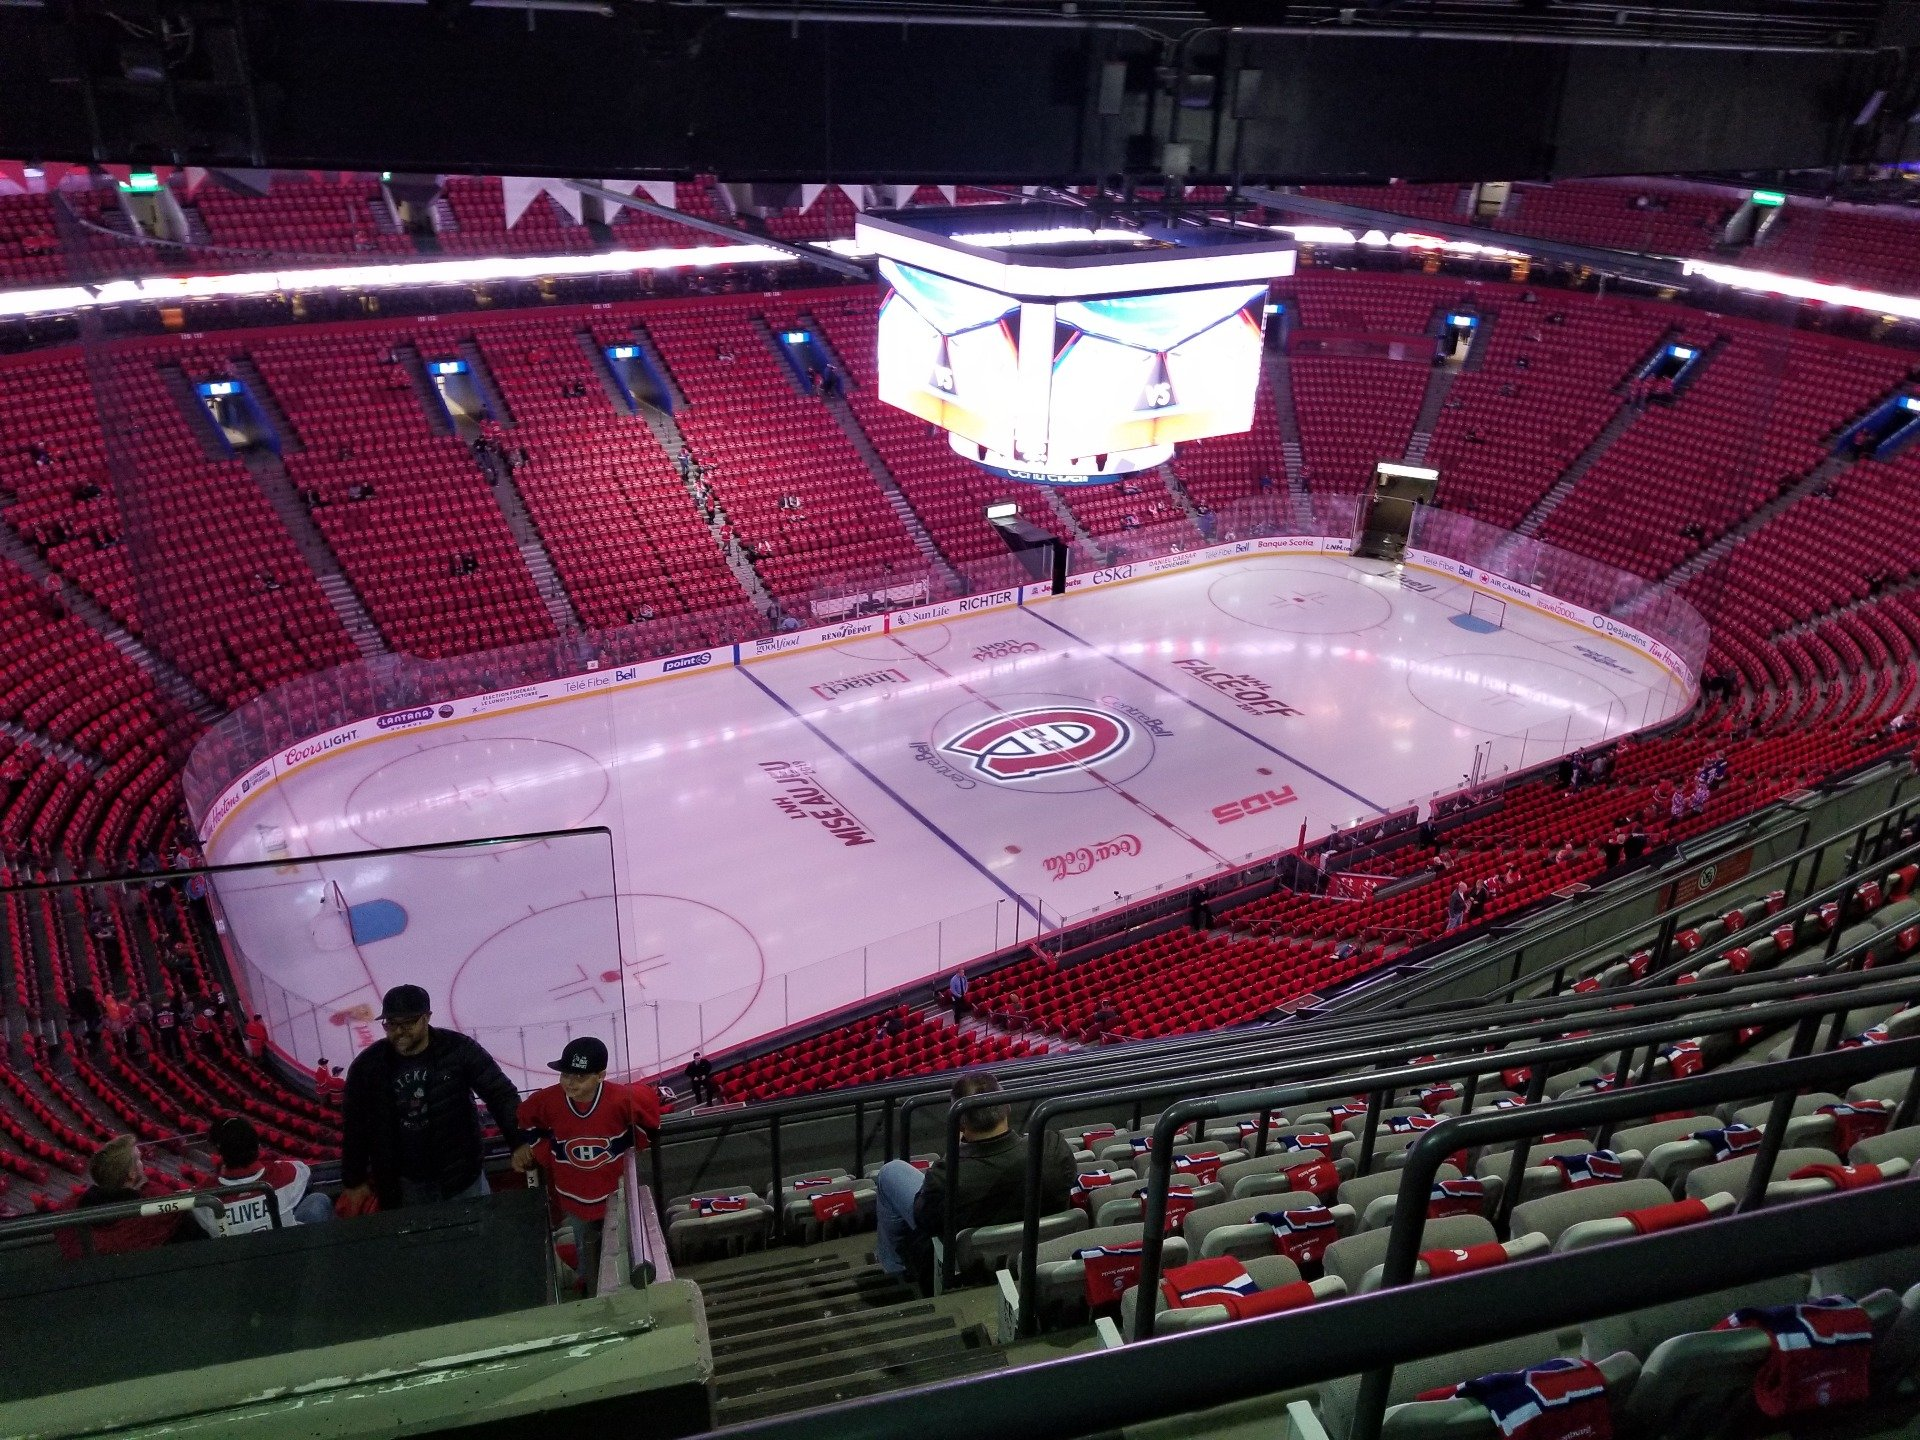 Centre Bell Section 304 Row D Seat 21